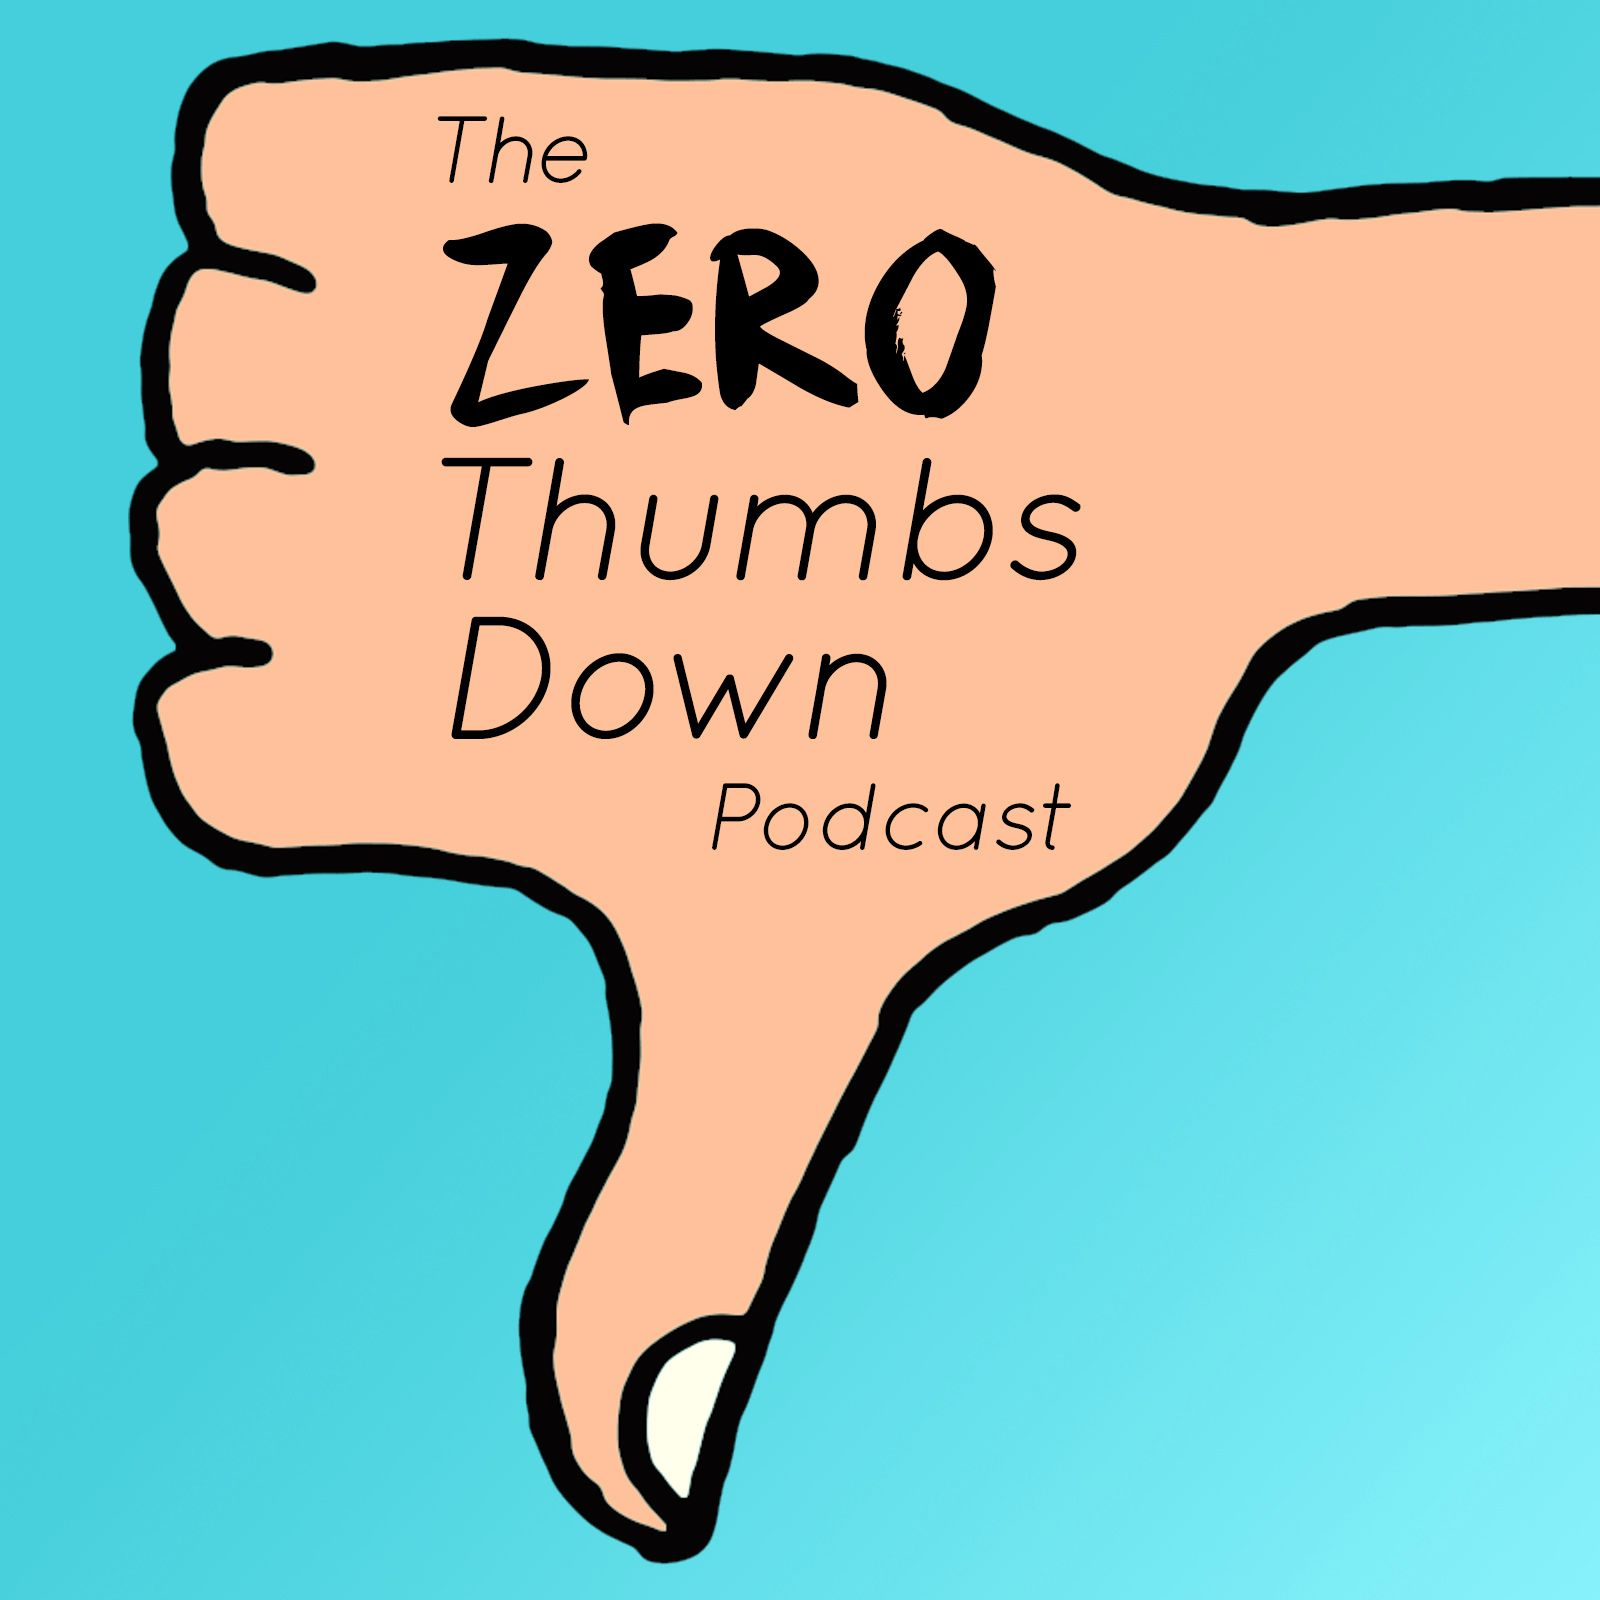 The Zero Thumbs Down Podcast